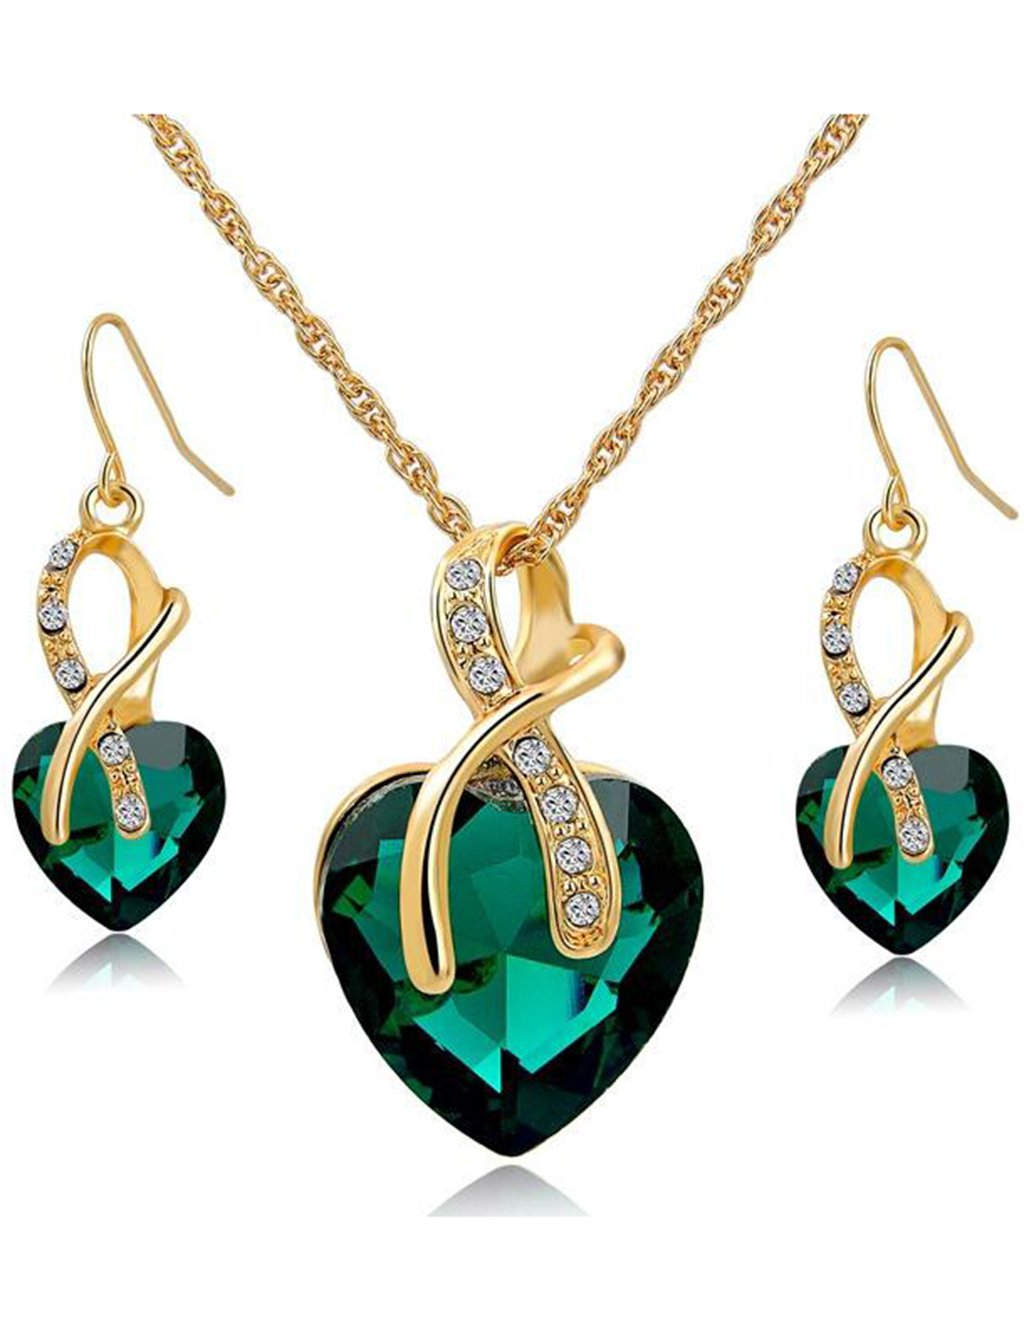 Gift! Gold Plated necklace Sets For Women Crystal Heart Necklace Earrings Jewellery Set Bridal Wedding Accessories (Green)